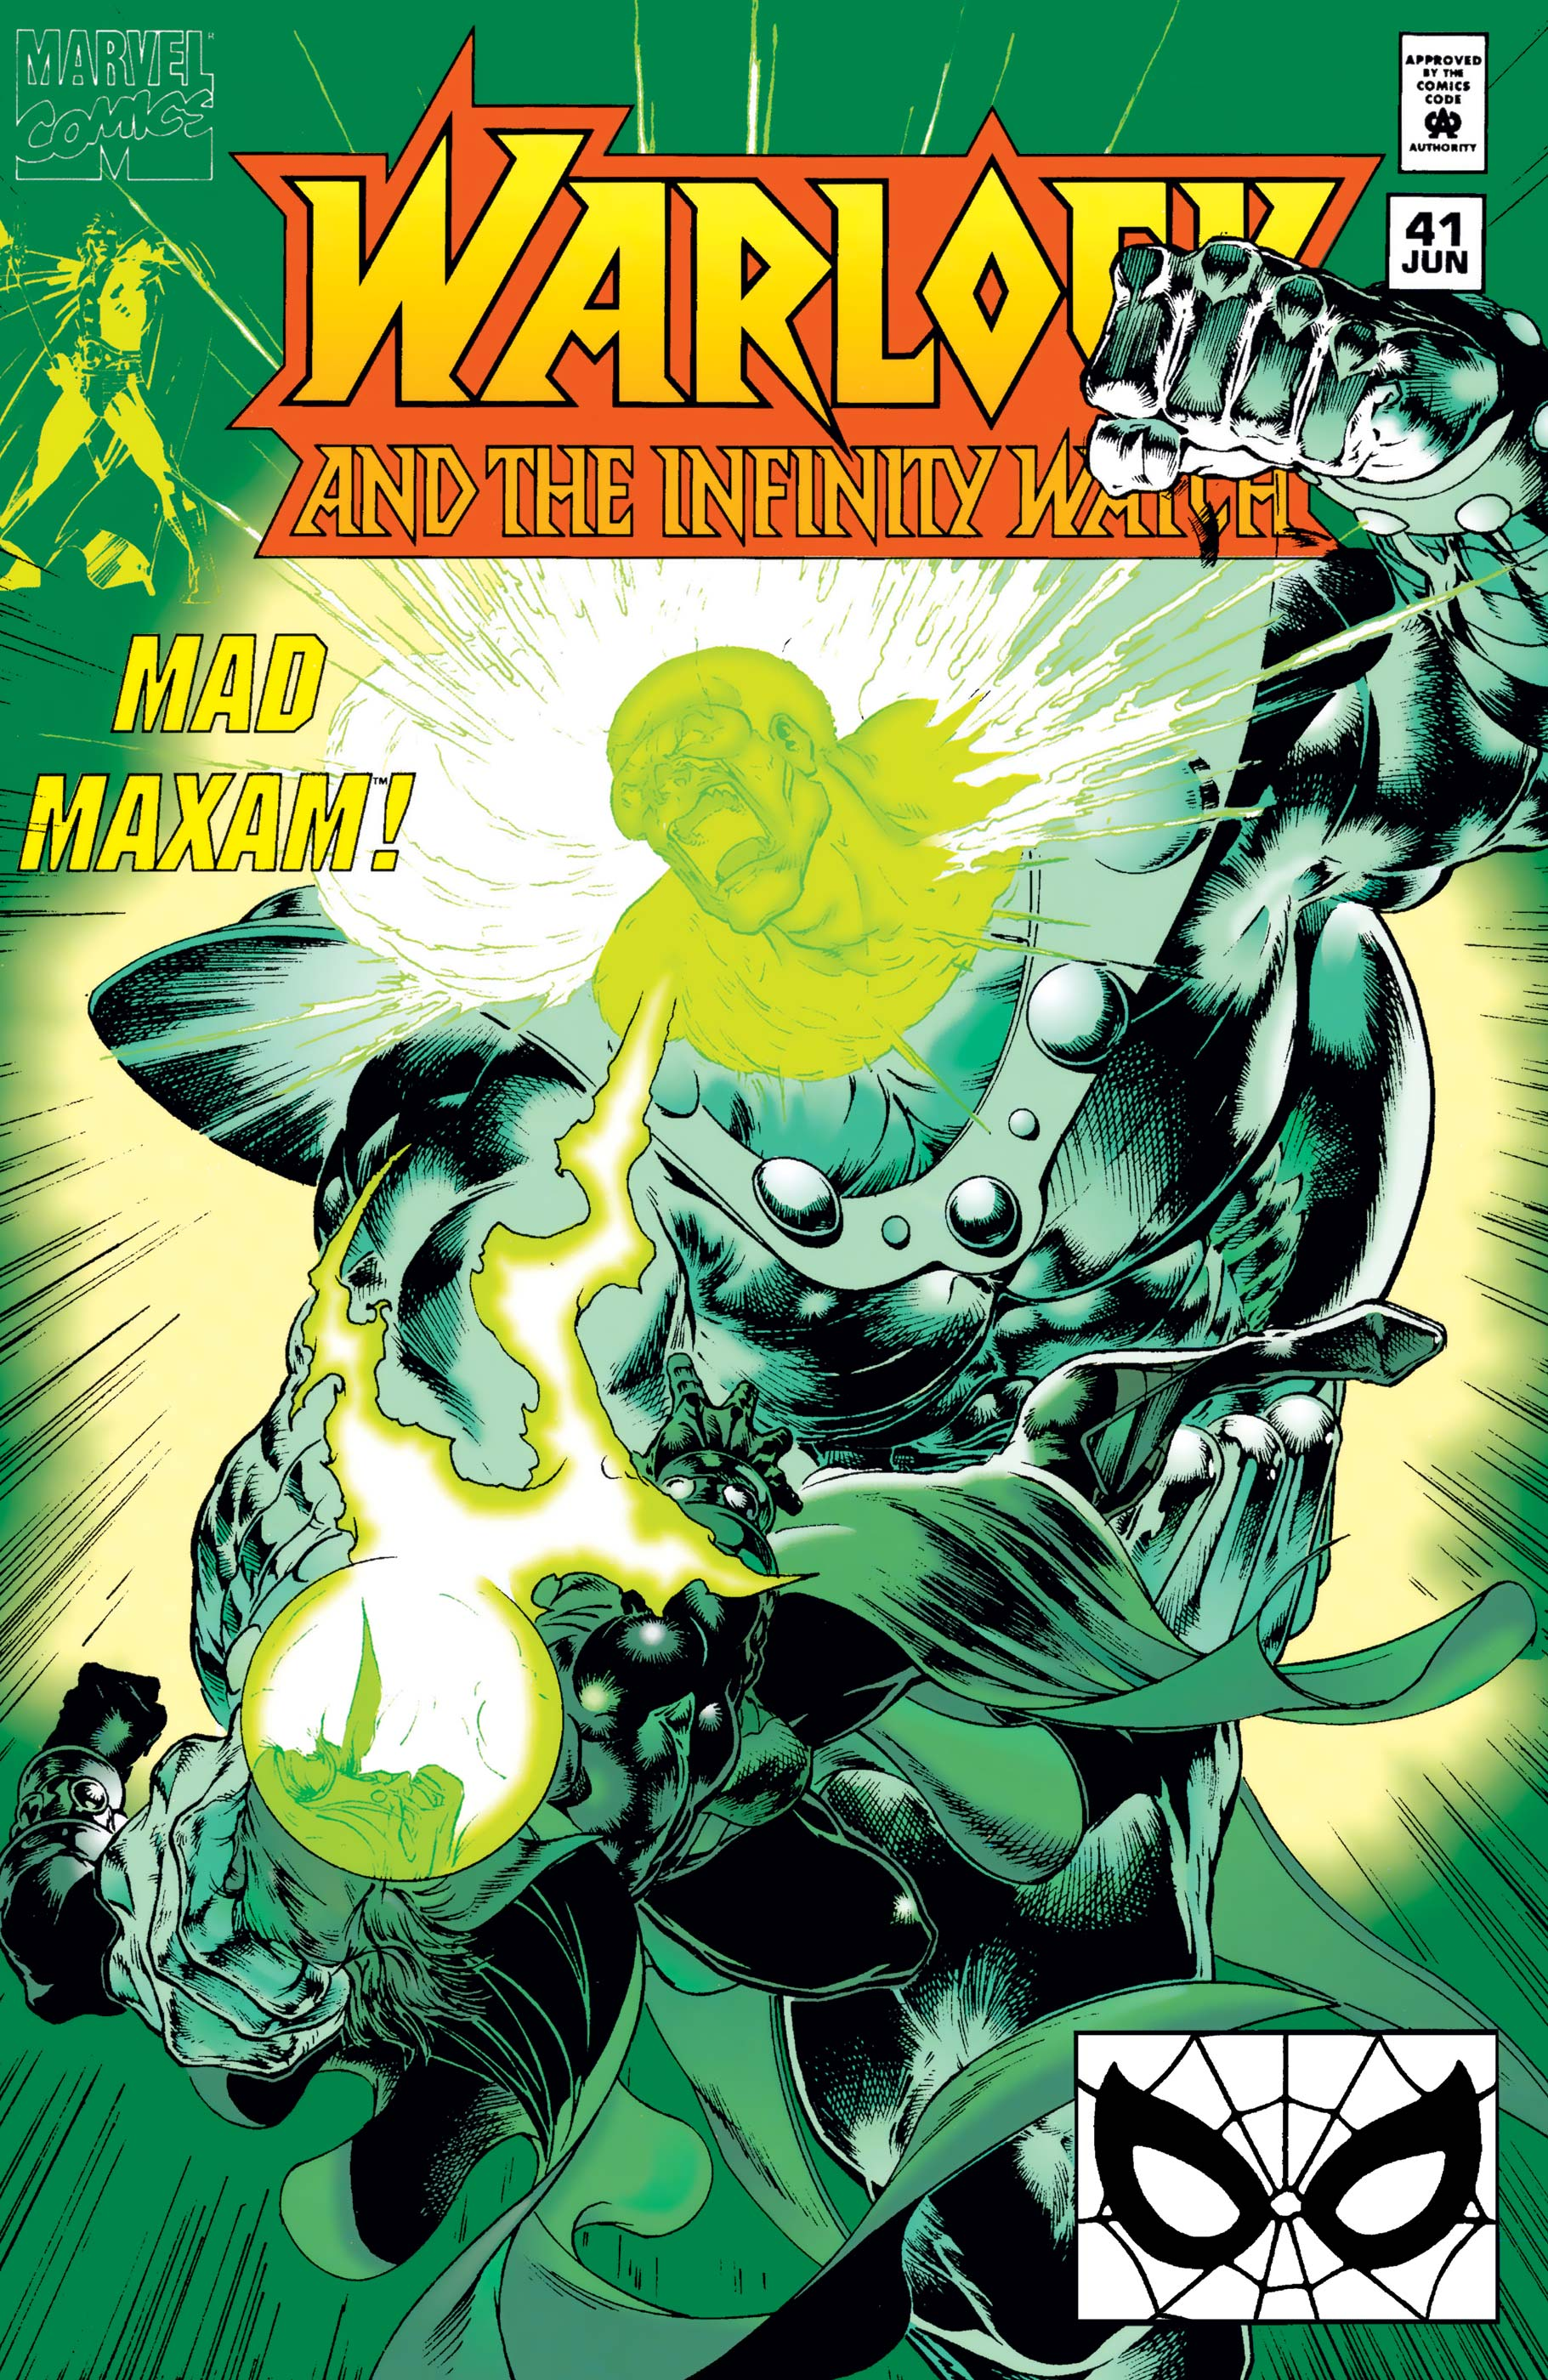 Warlock and the Infinity Watch (1992) #41